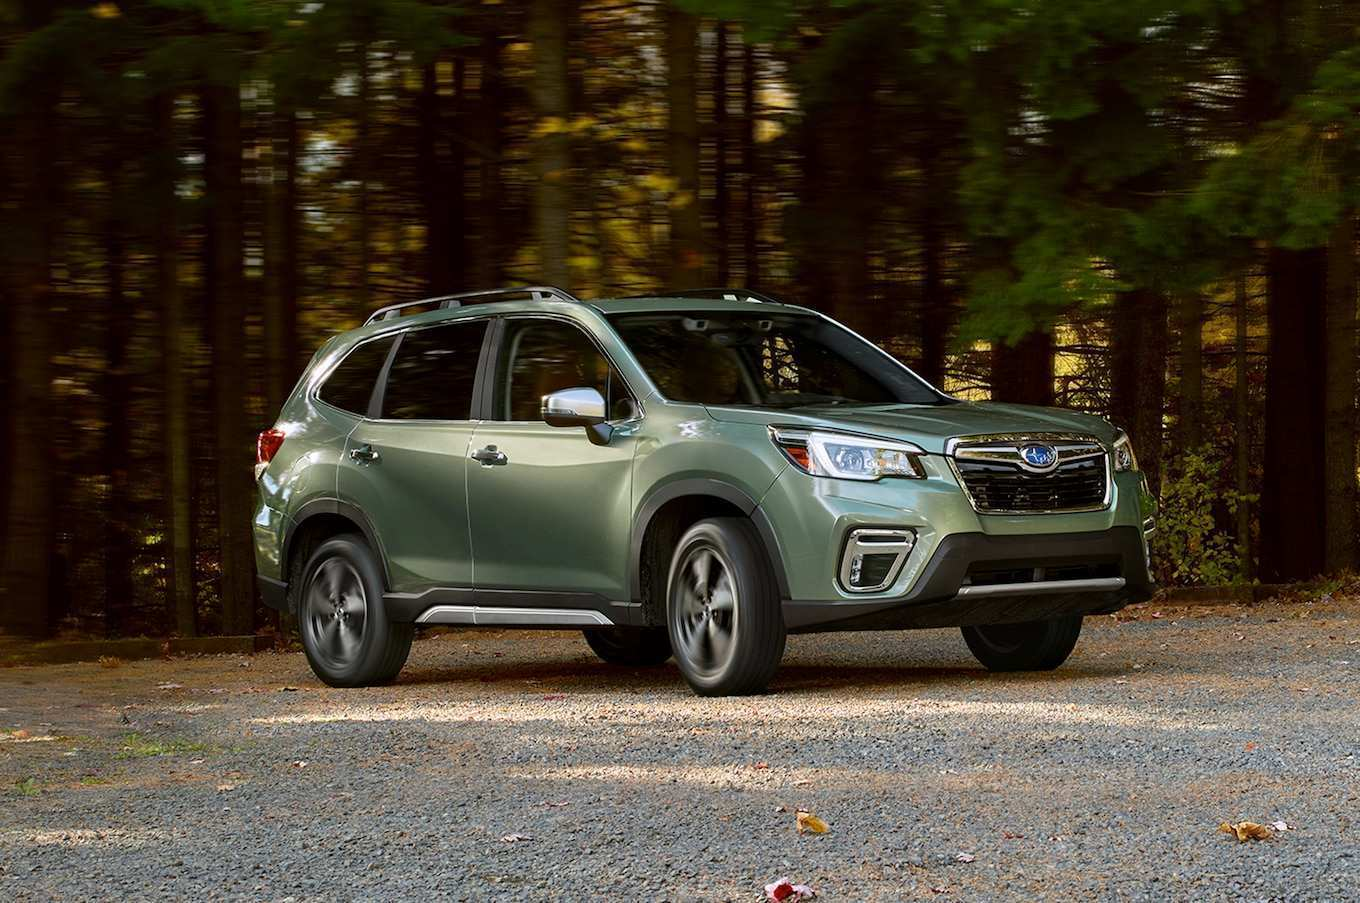 90 New Subaru Forester 2019 News Price And Review